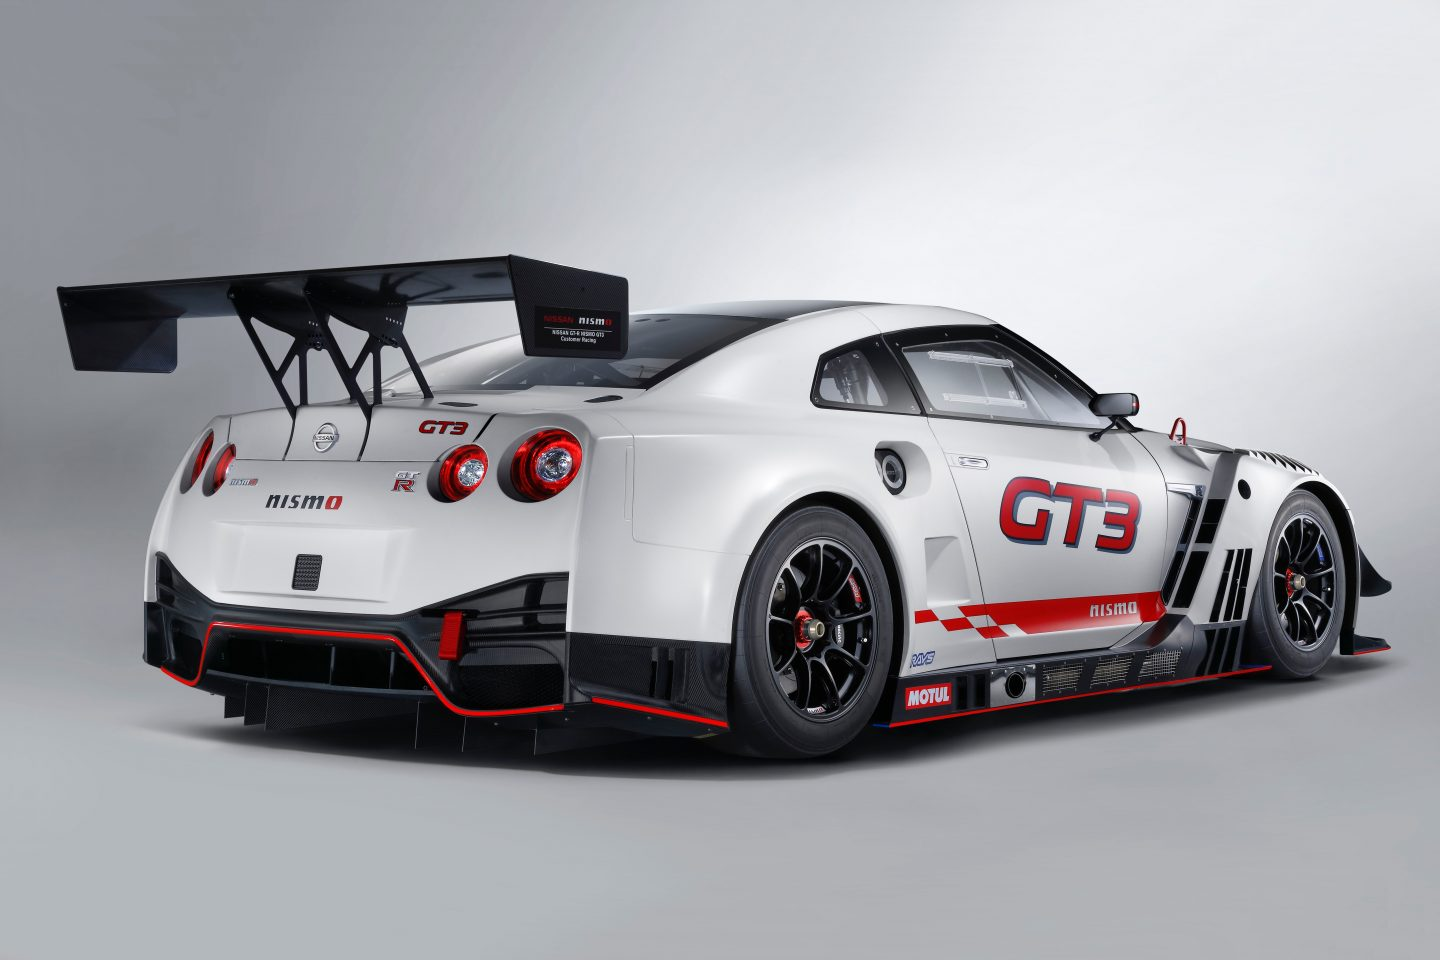 2018 Nissan Gt R Nismo Gt3 Now For Sale Nissan Motorsports